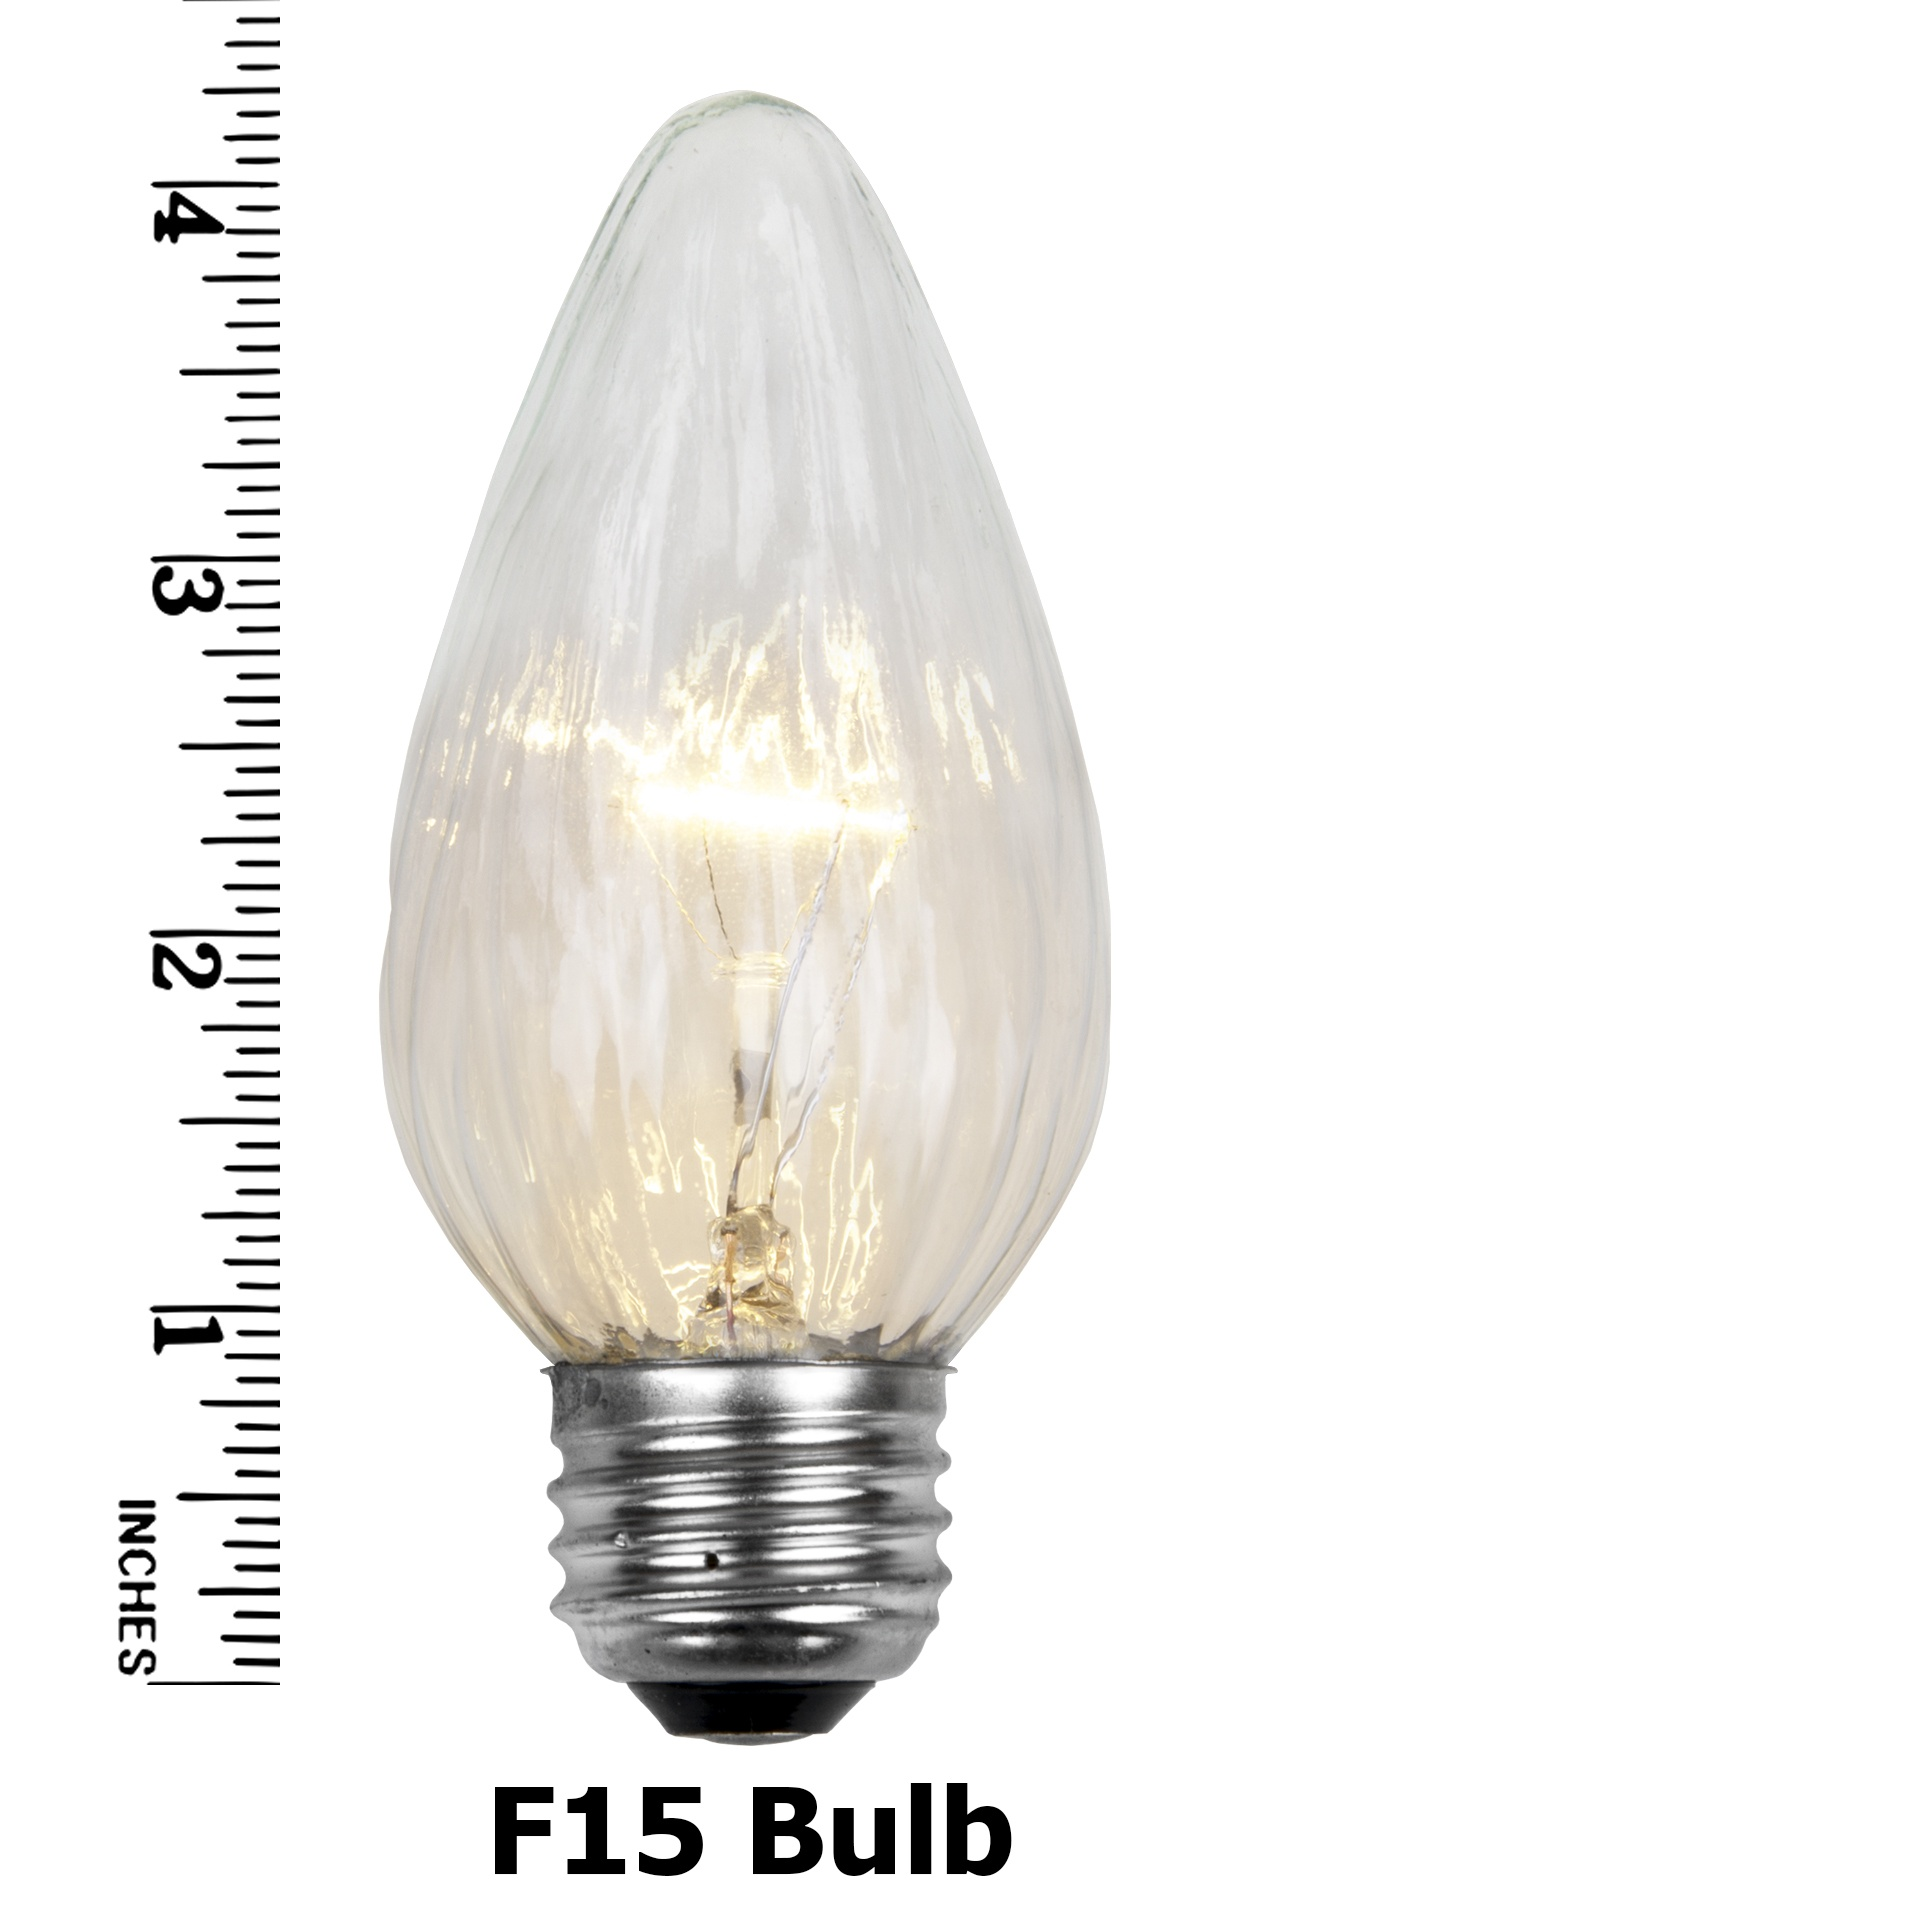 F15 Transparent Clear Flame Replacement Bulb E26 Base Measurements